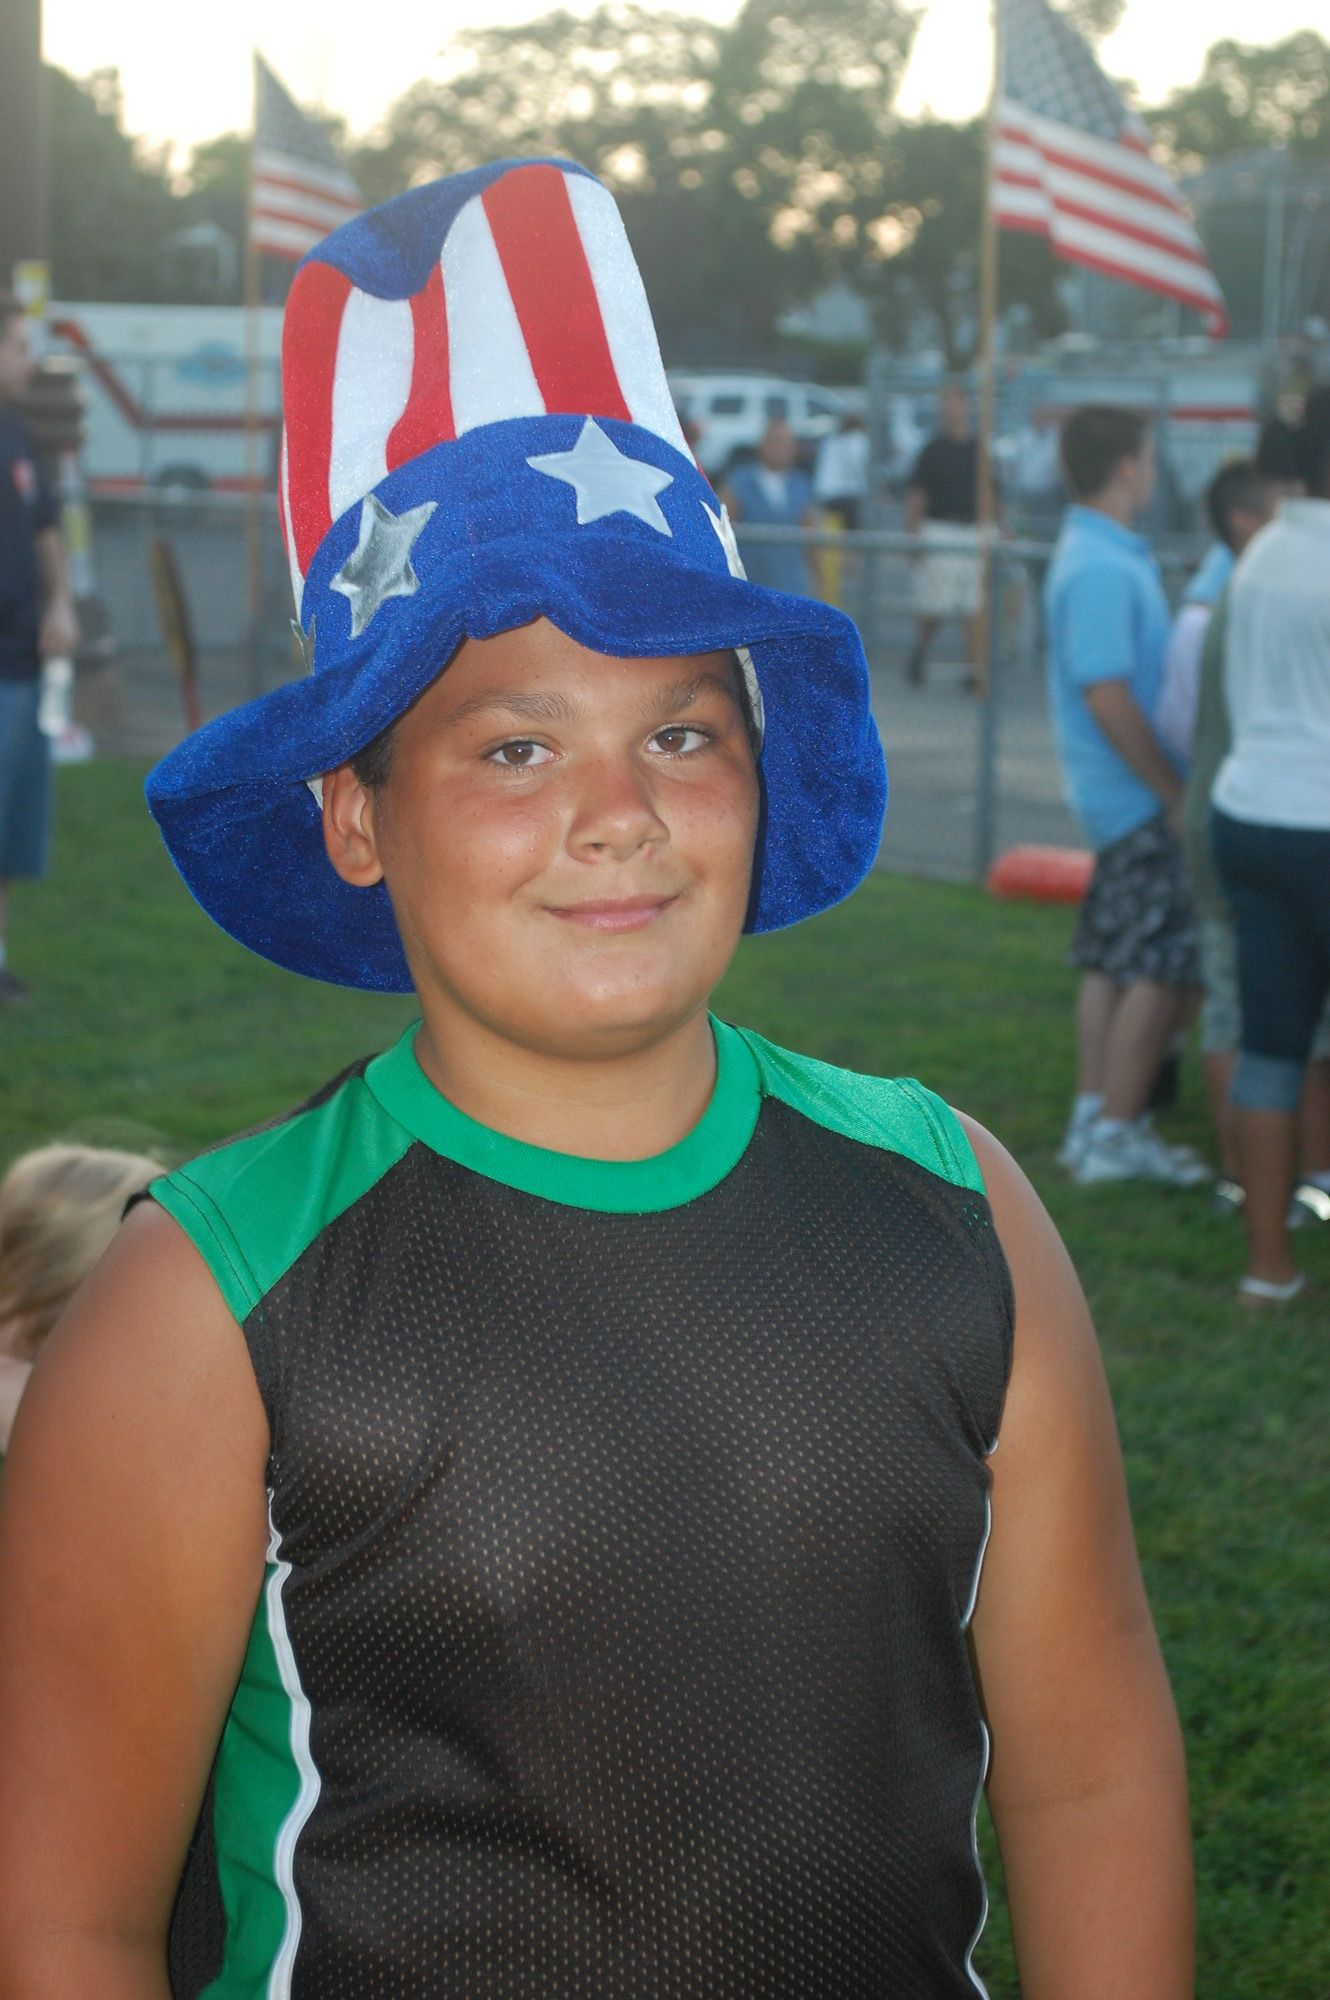 Nick Jones, 11, was in the patriotic spirit.